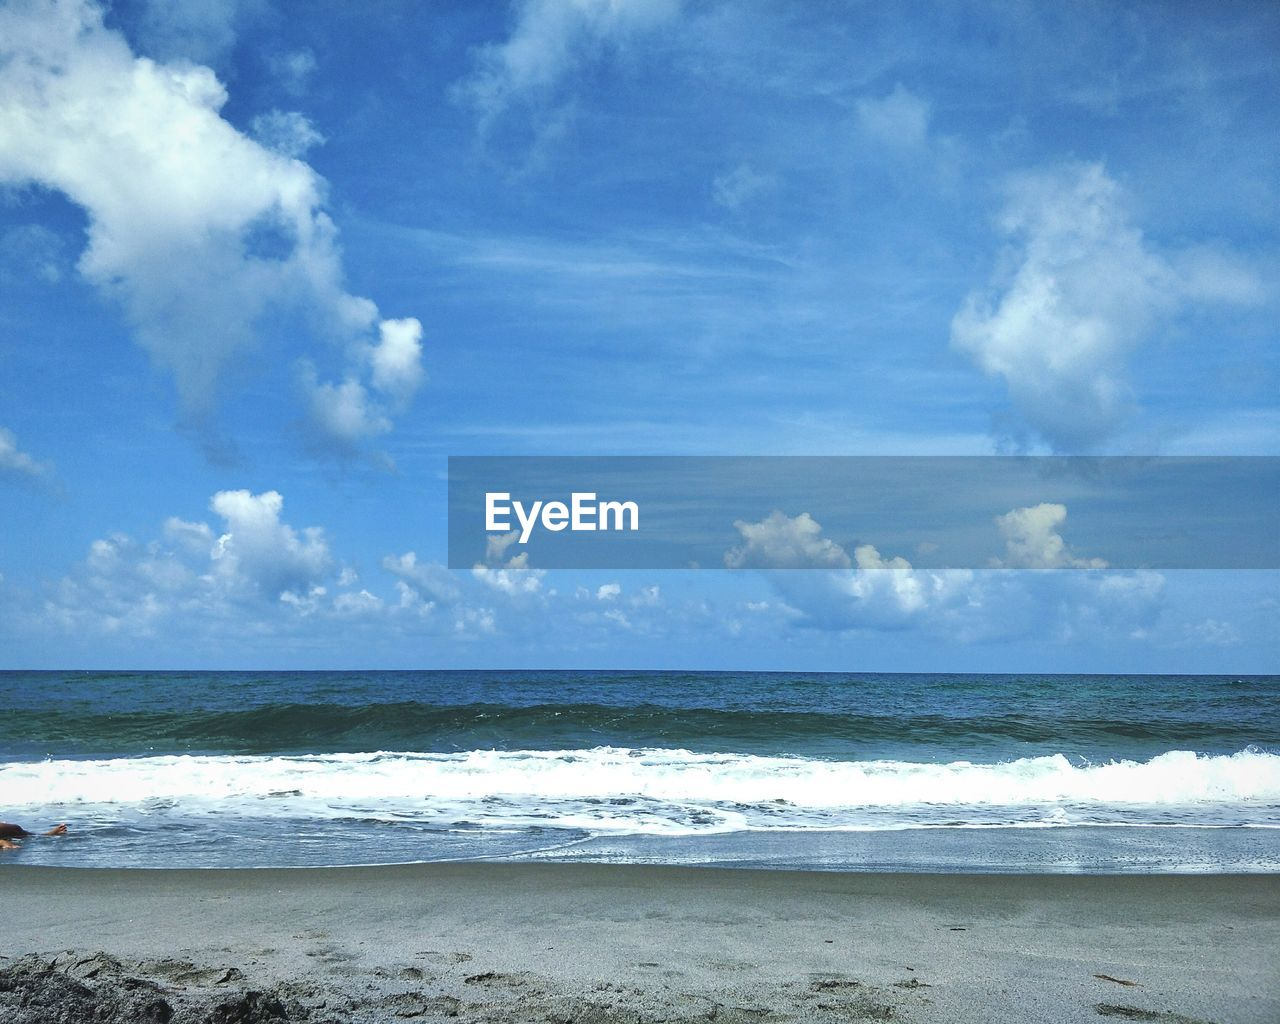 sea, horizon over water, beach, sky, water, nature, beauty in nature, scenics, cloud - sky, tranquility, wave, day, tranquil scene, sand, outdoors, no people, scenery